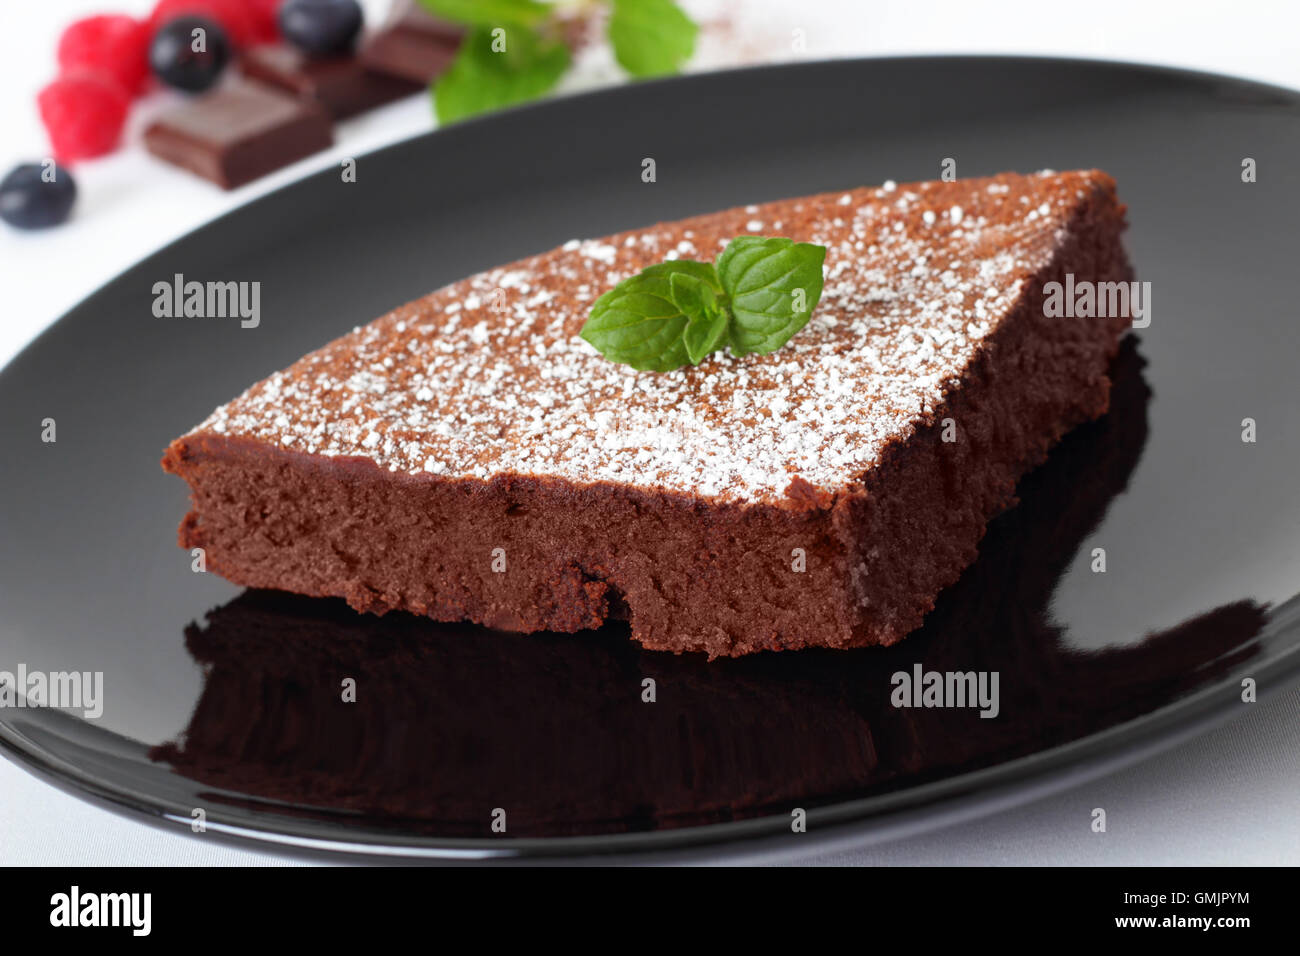 chocolate cake with soft chocolate core and fruits. - Stock Image